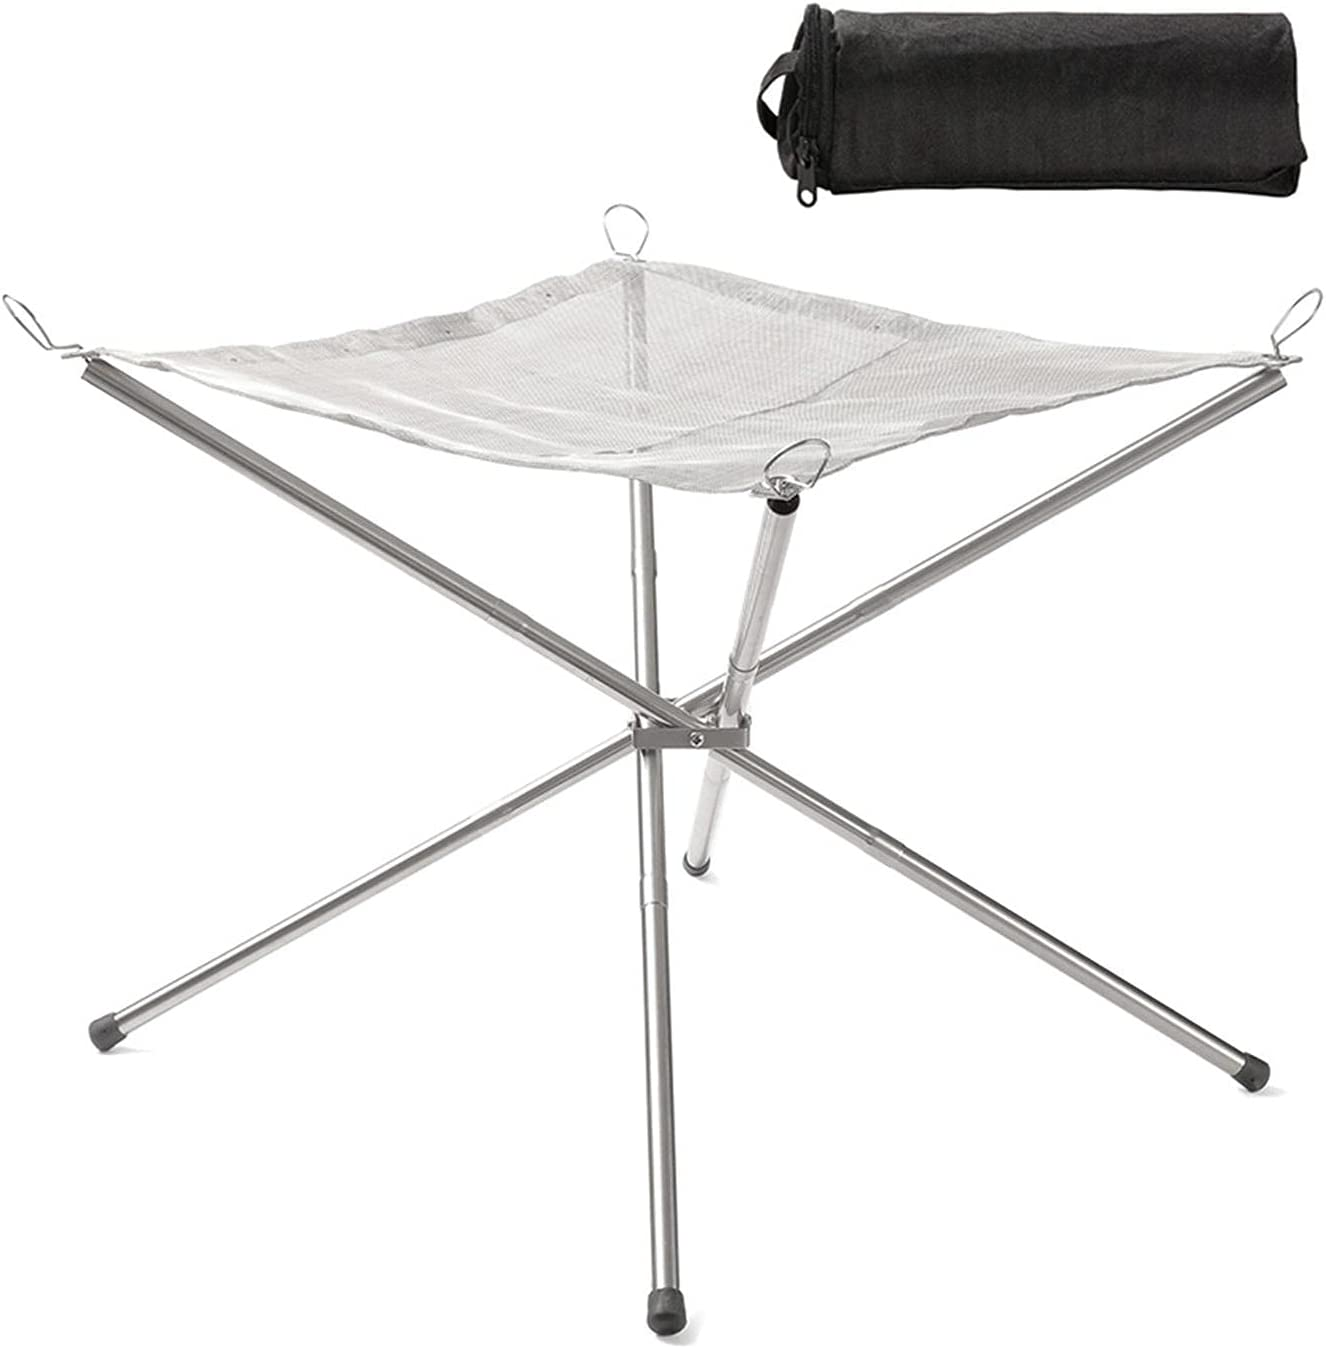 wujomeas Portable Outdoor National products Fire Pit Grill Import Outd - Folding Campfire